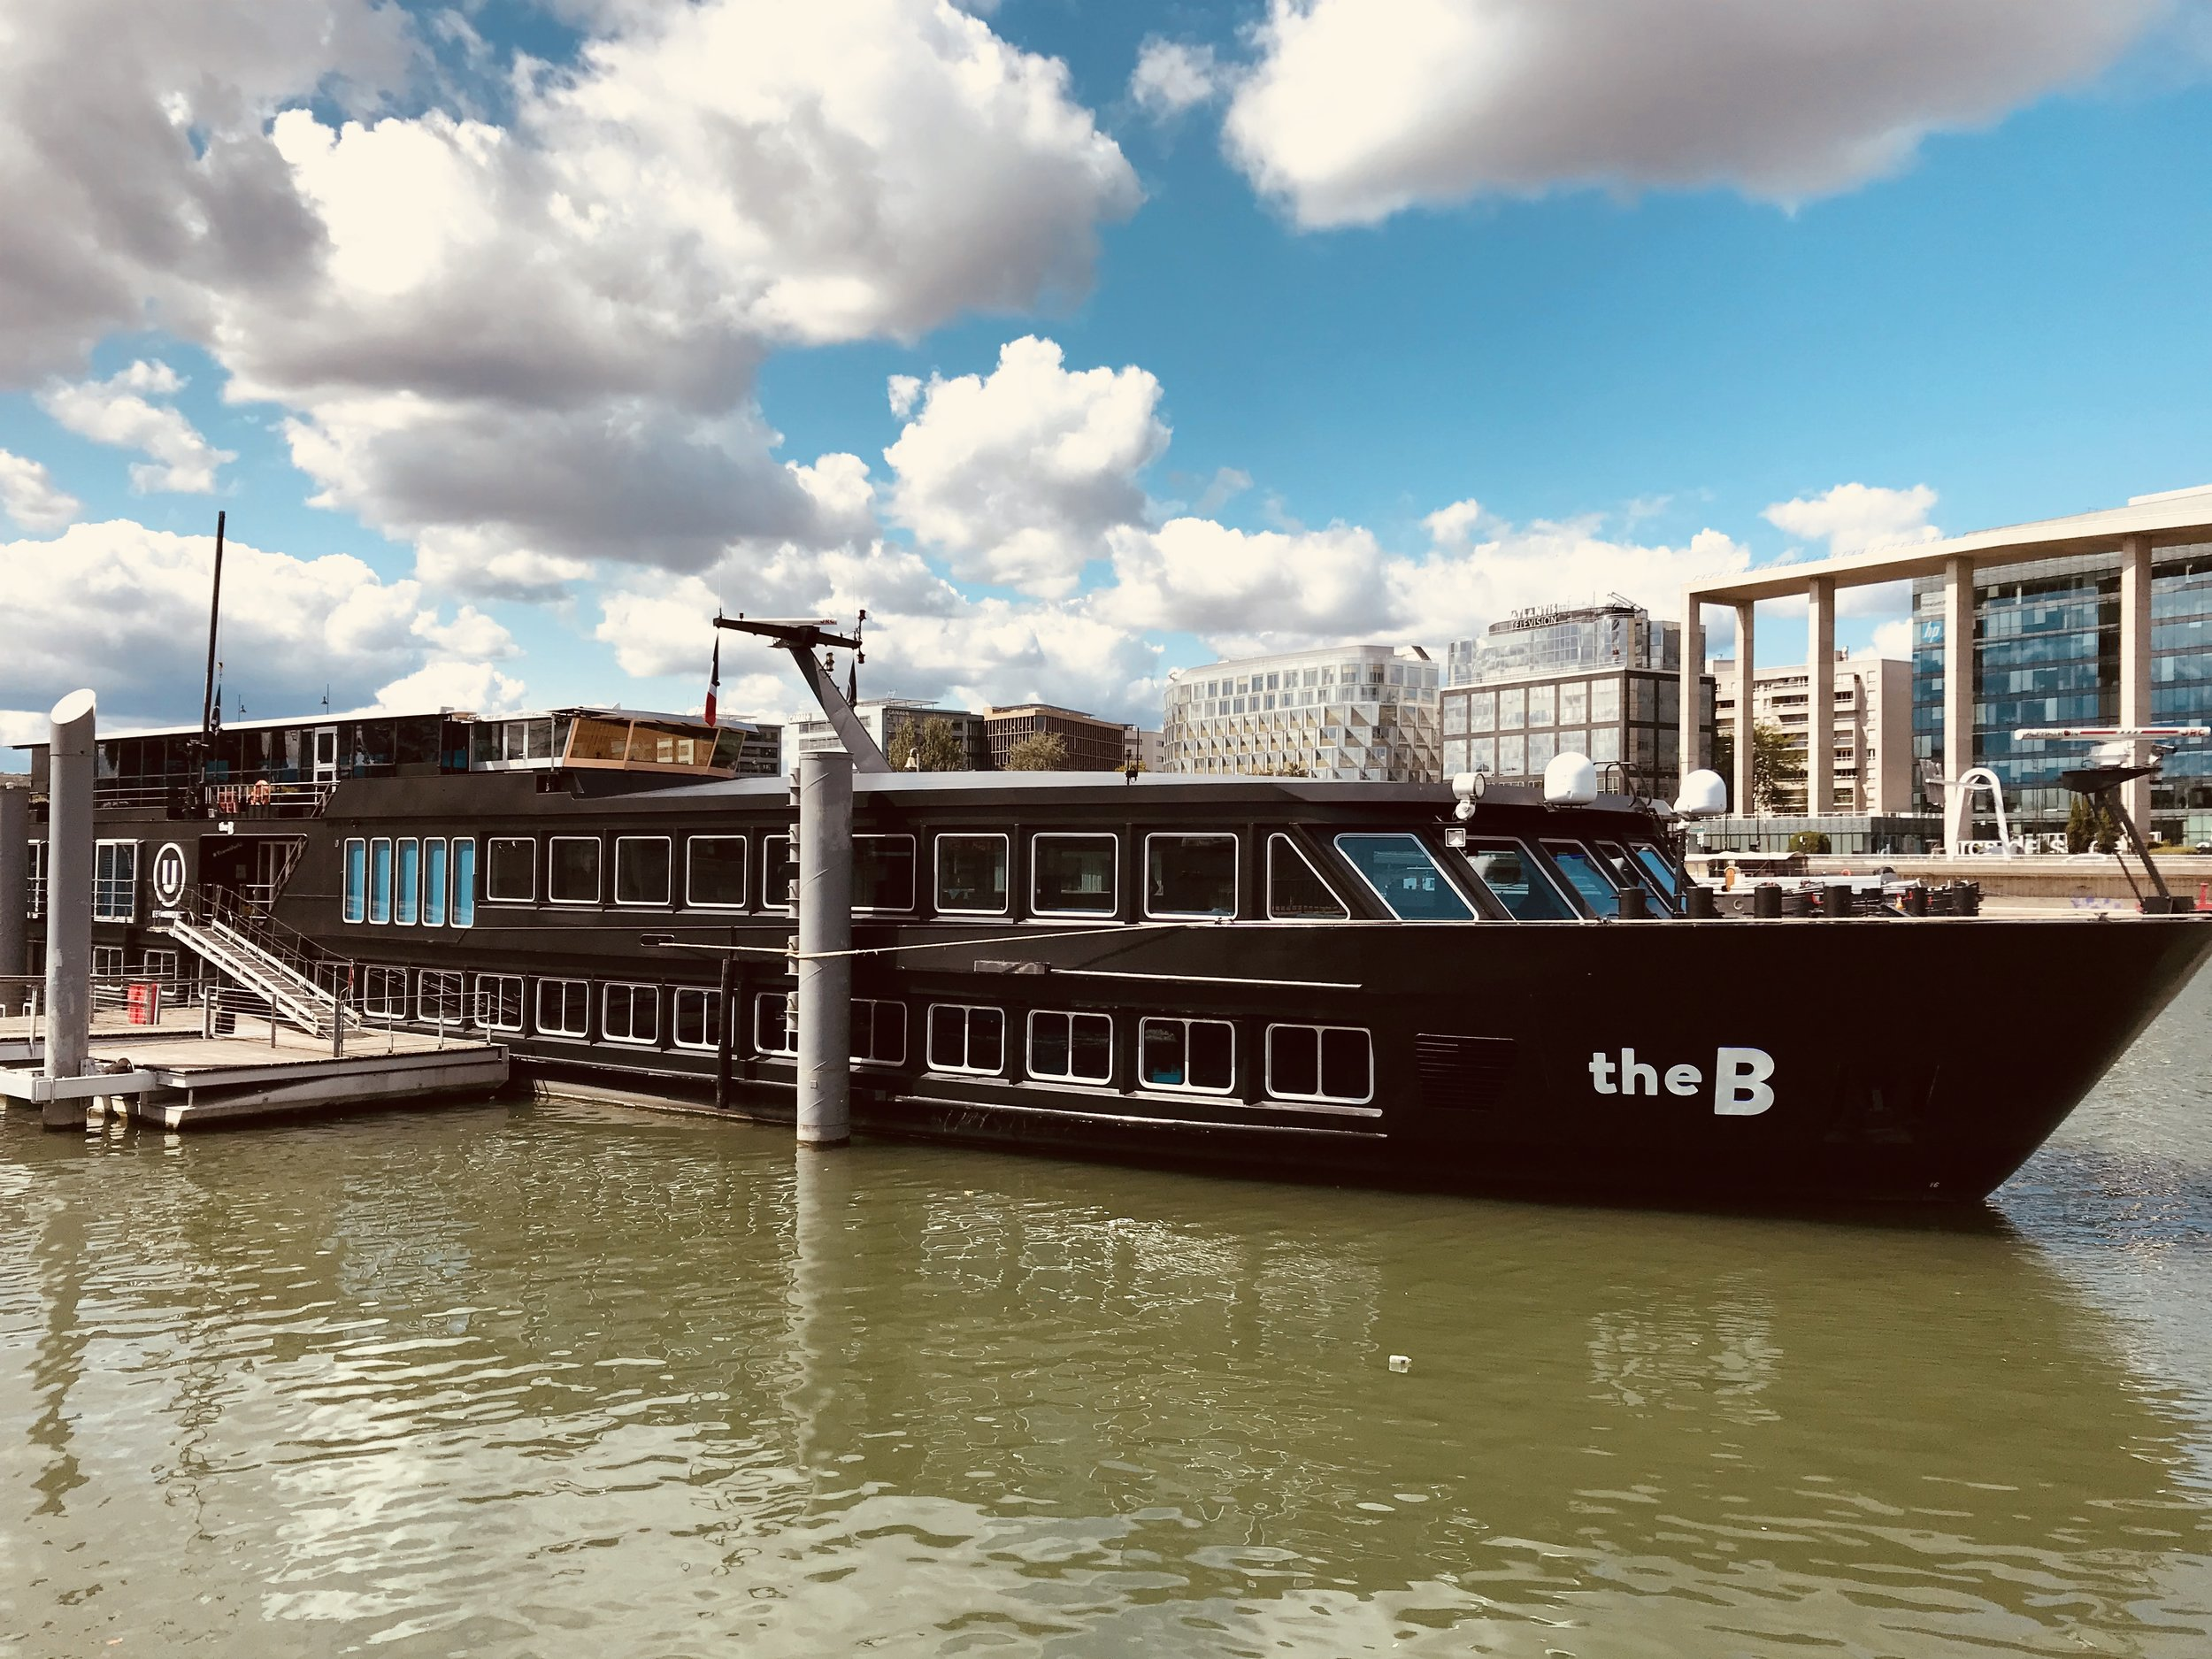 The B, an amazing boat for U by Uniworld